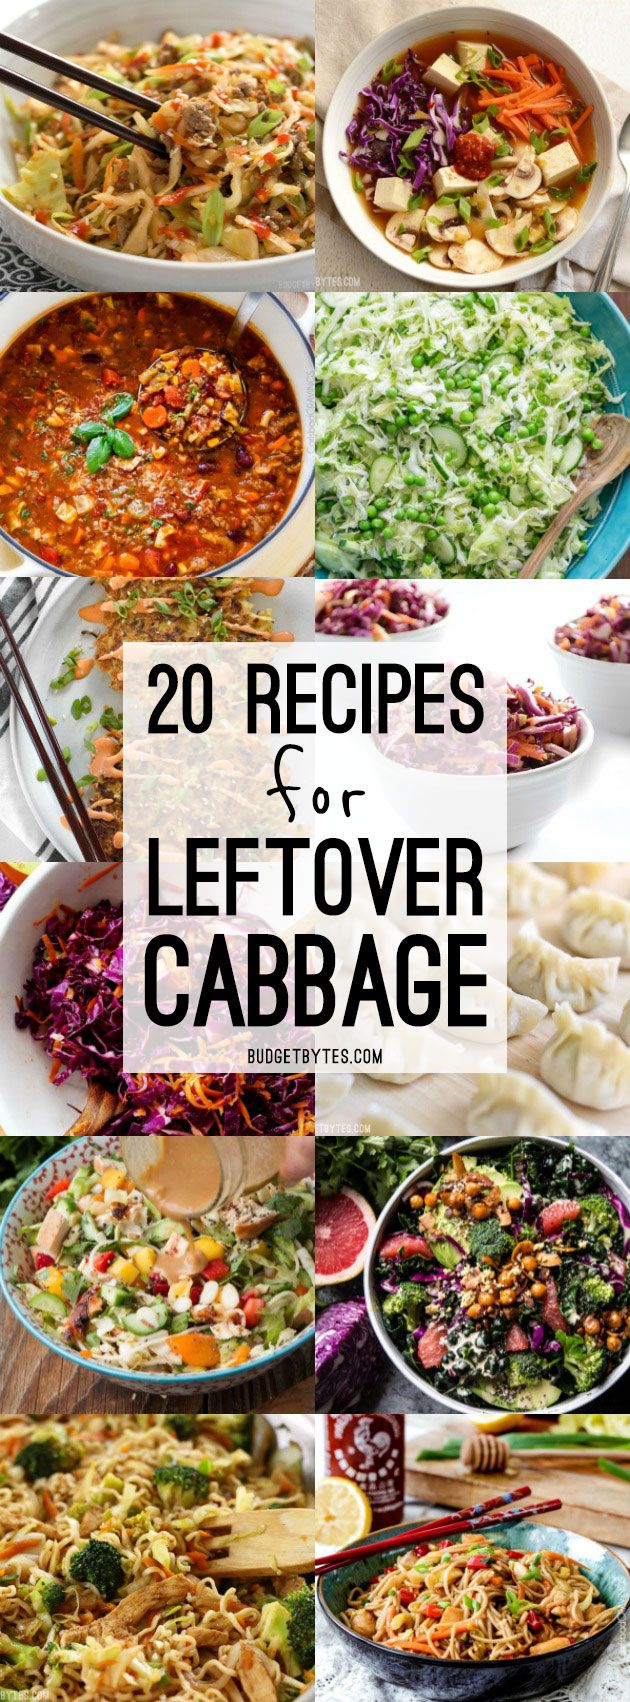 Cabbage is healthy, inexpensive, and can be use a million different ways! Here are 20 delicious ways to use your leftover cabbage so it never goes to waste. @budgetbytes